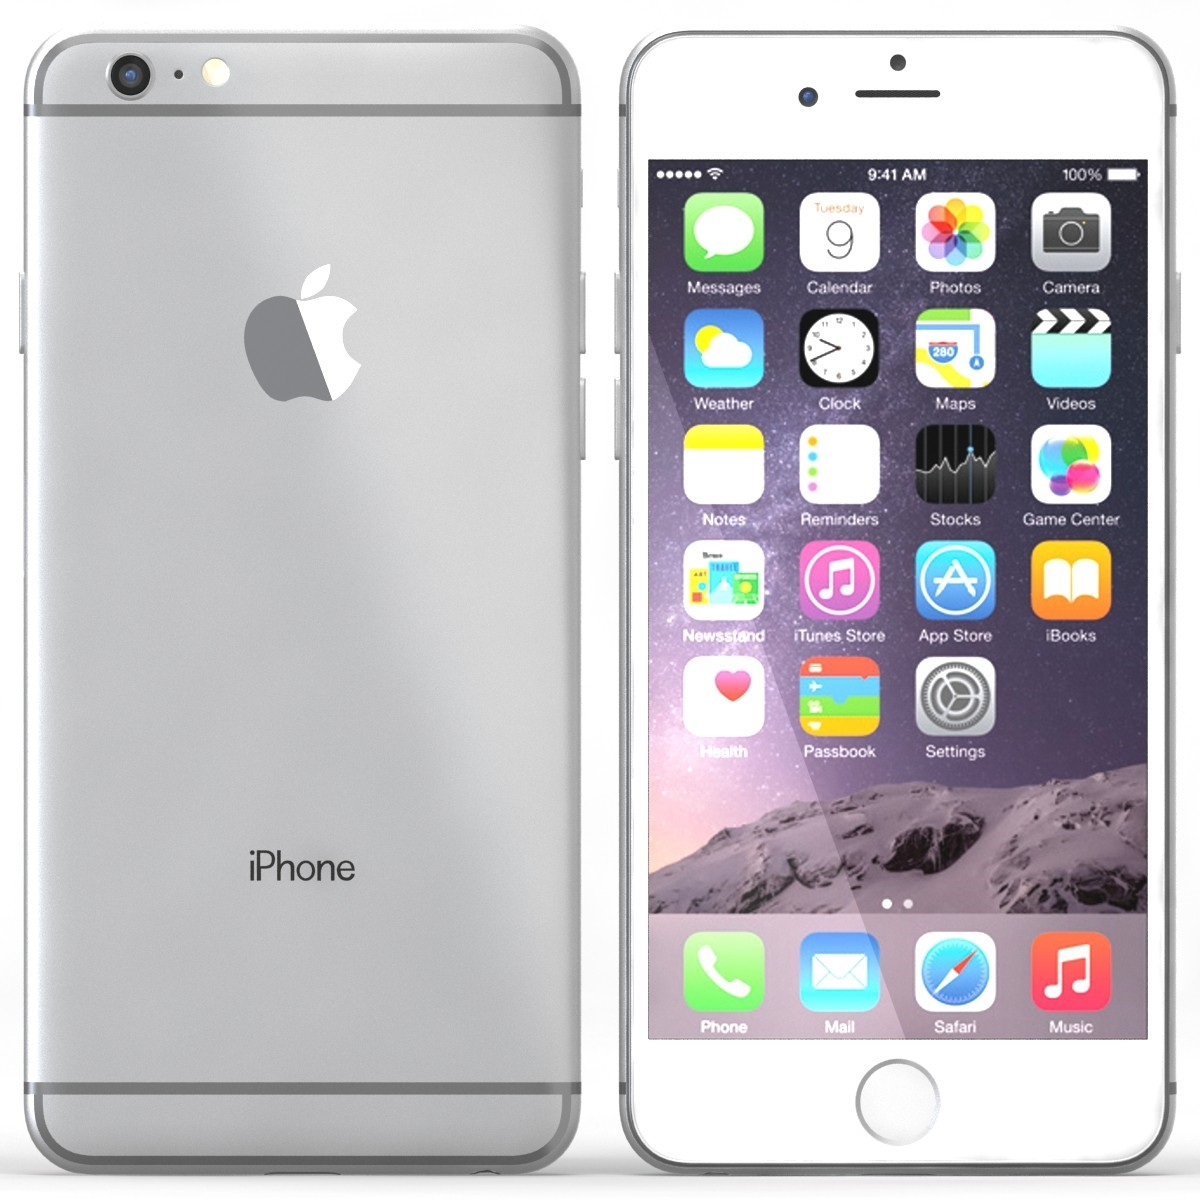 iPHone 7 & 7Plus release date -